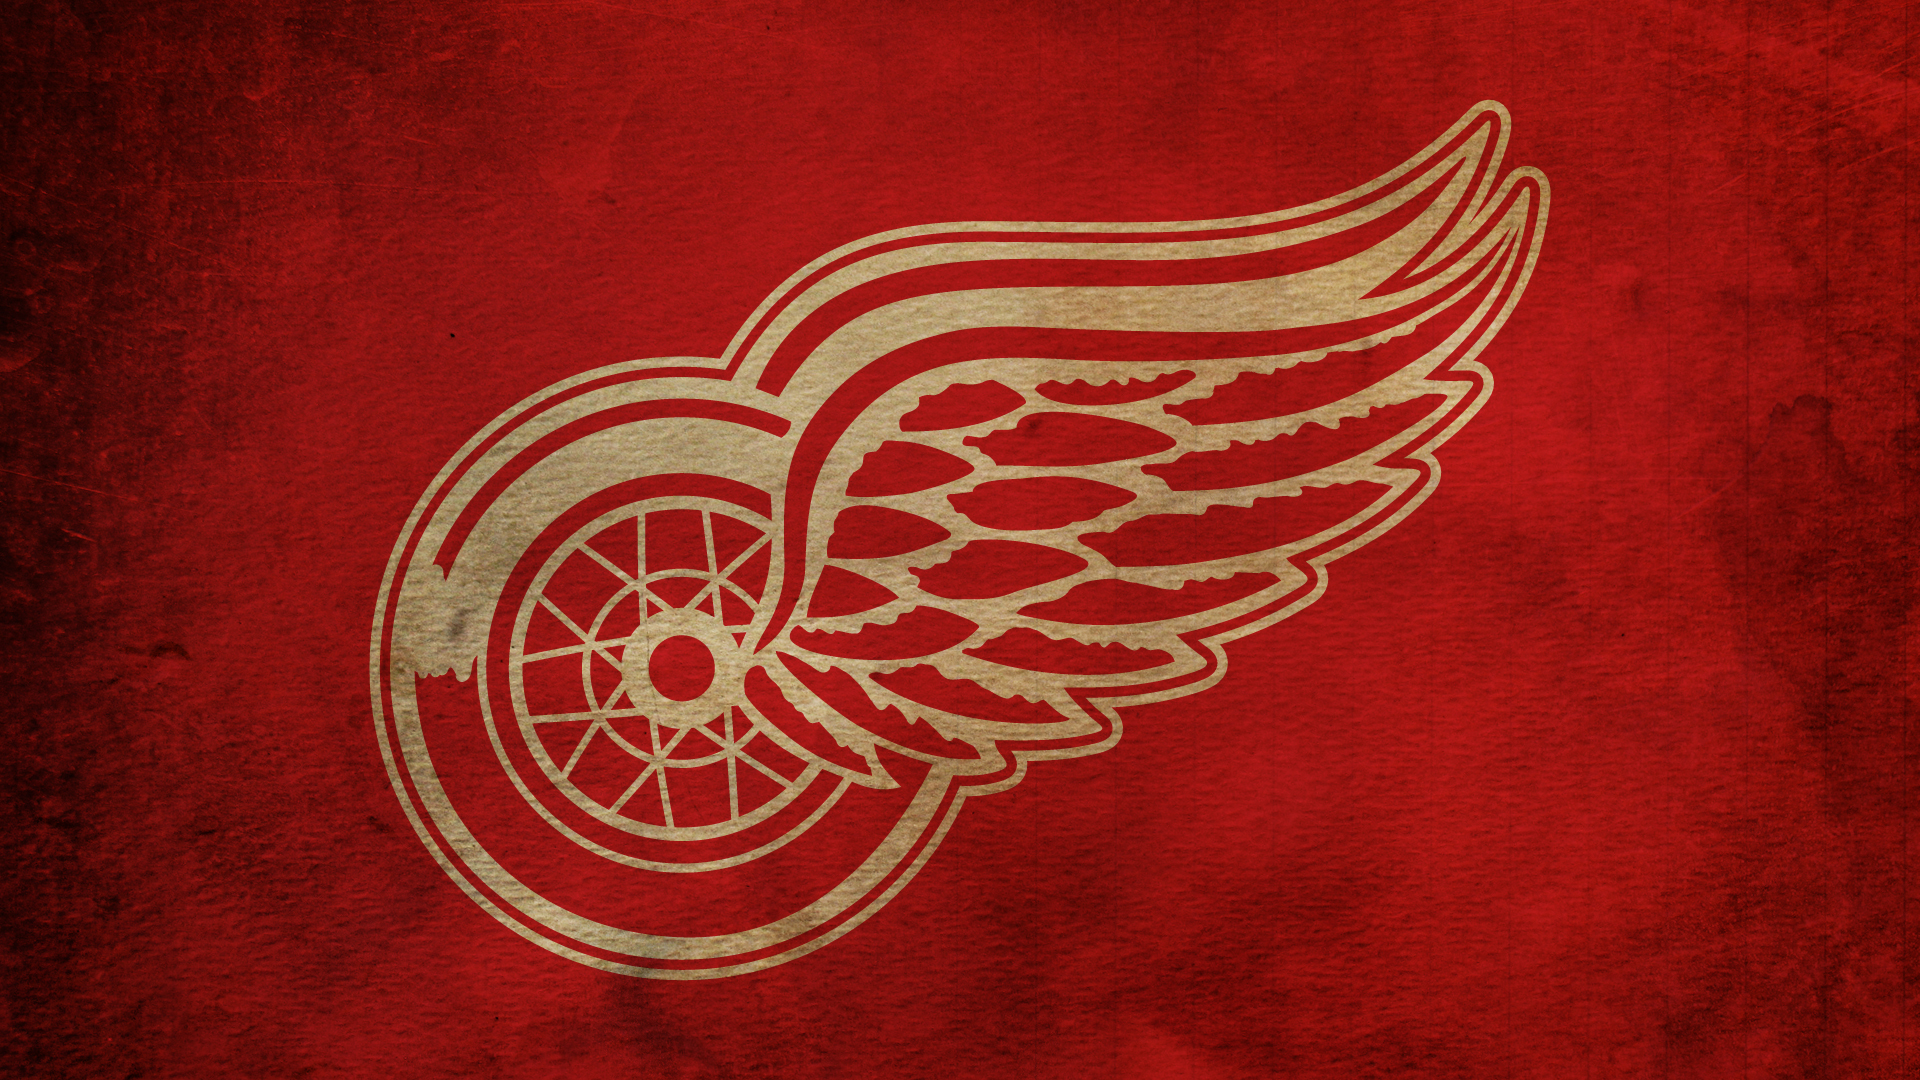 Sports - Detroit Red Wings Wallpaper